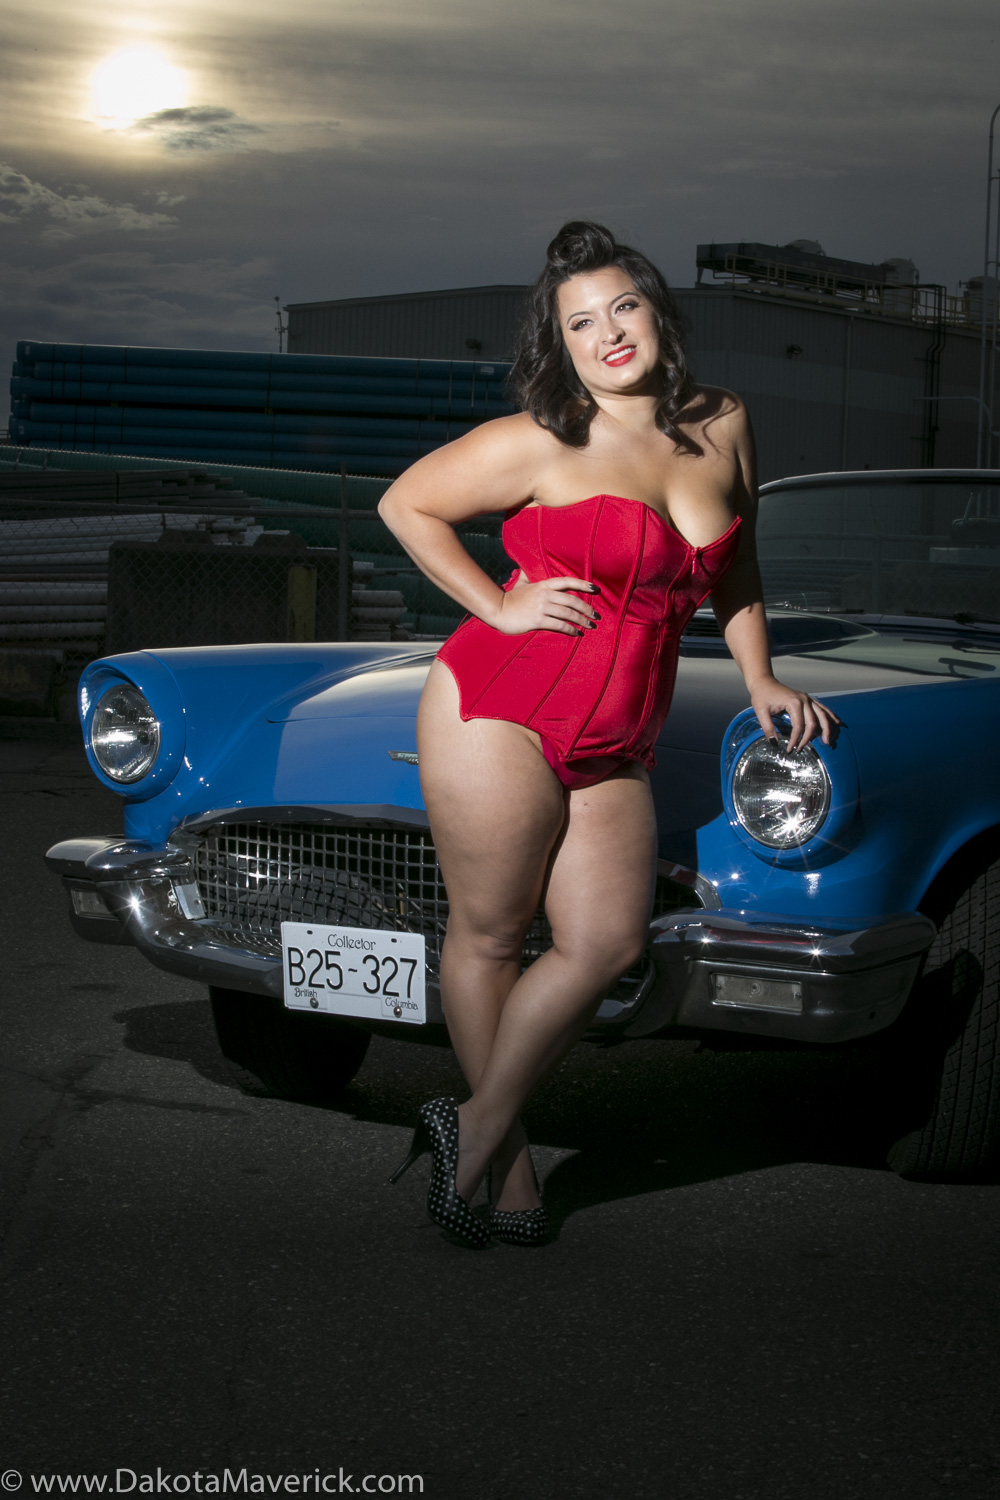 Vancouver Pinup Photographer - April (7 of 19).jpg